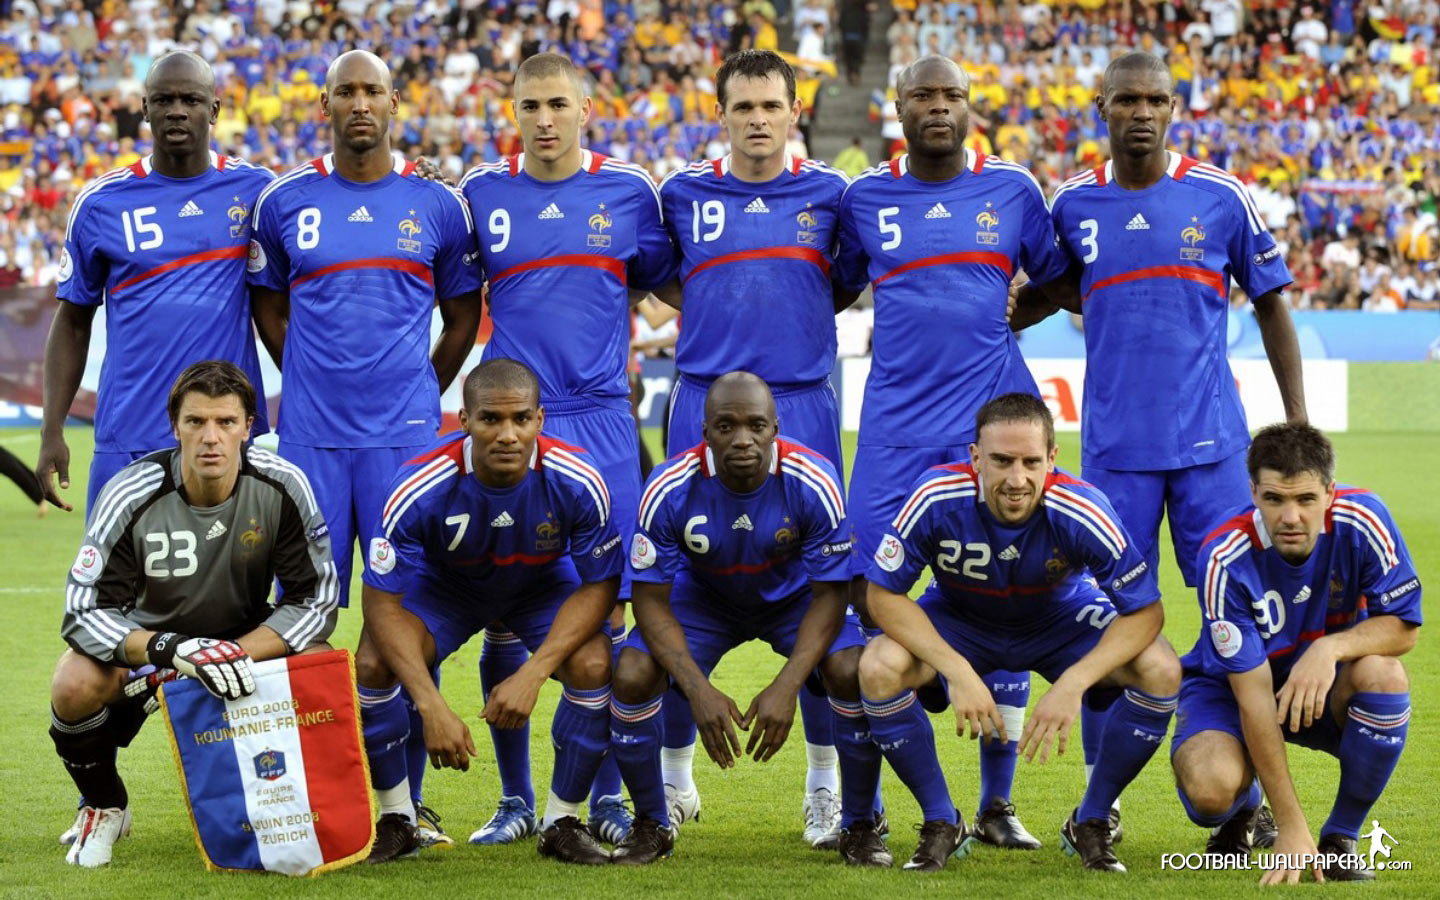 France National Team Wallpaper 7 Football Wallpapers 1440x900